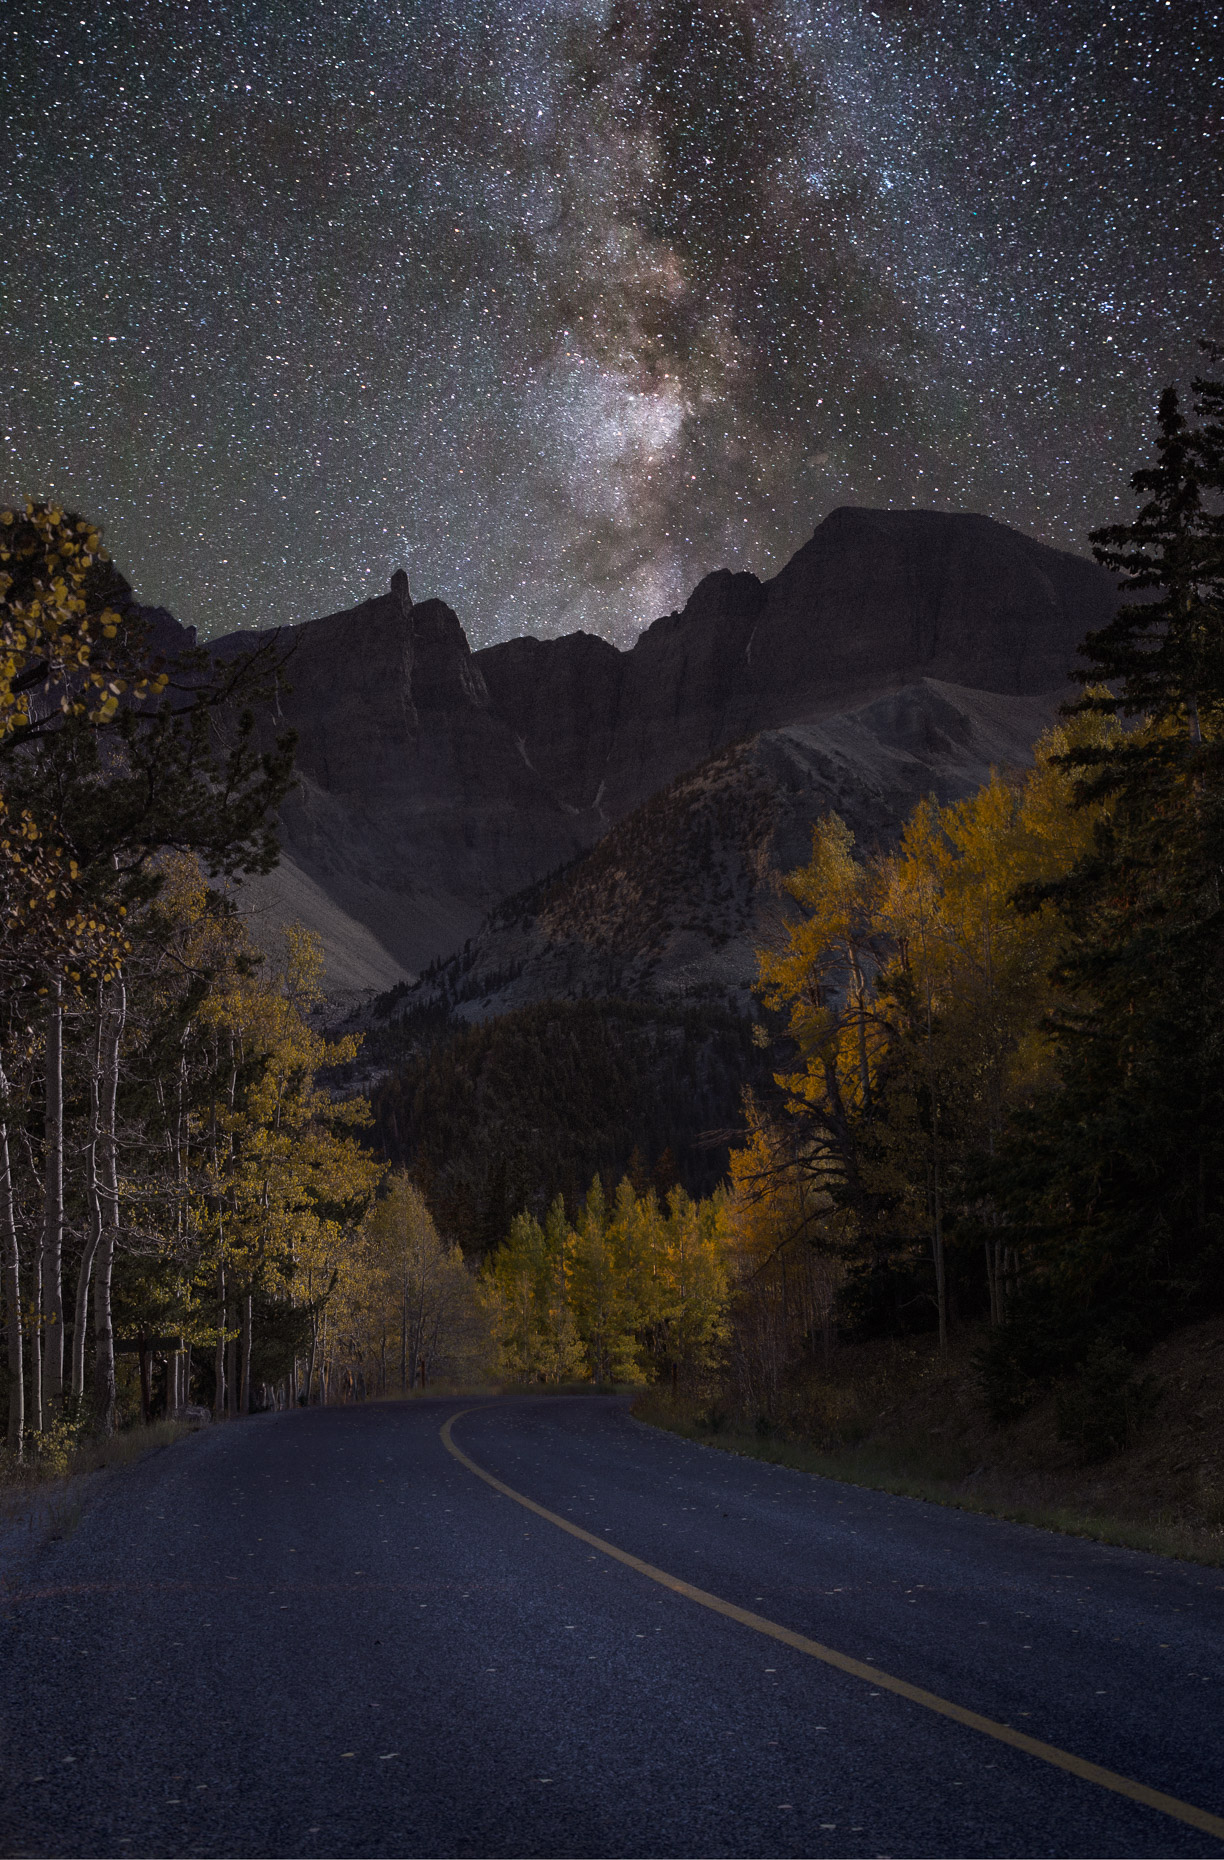 two lane road and Milky Way in the sky with autumn colors